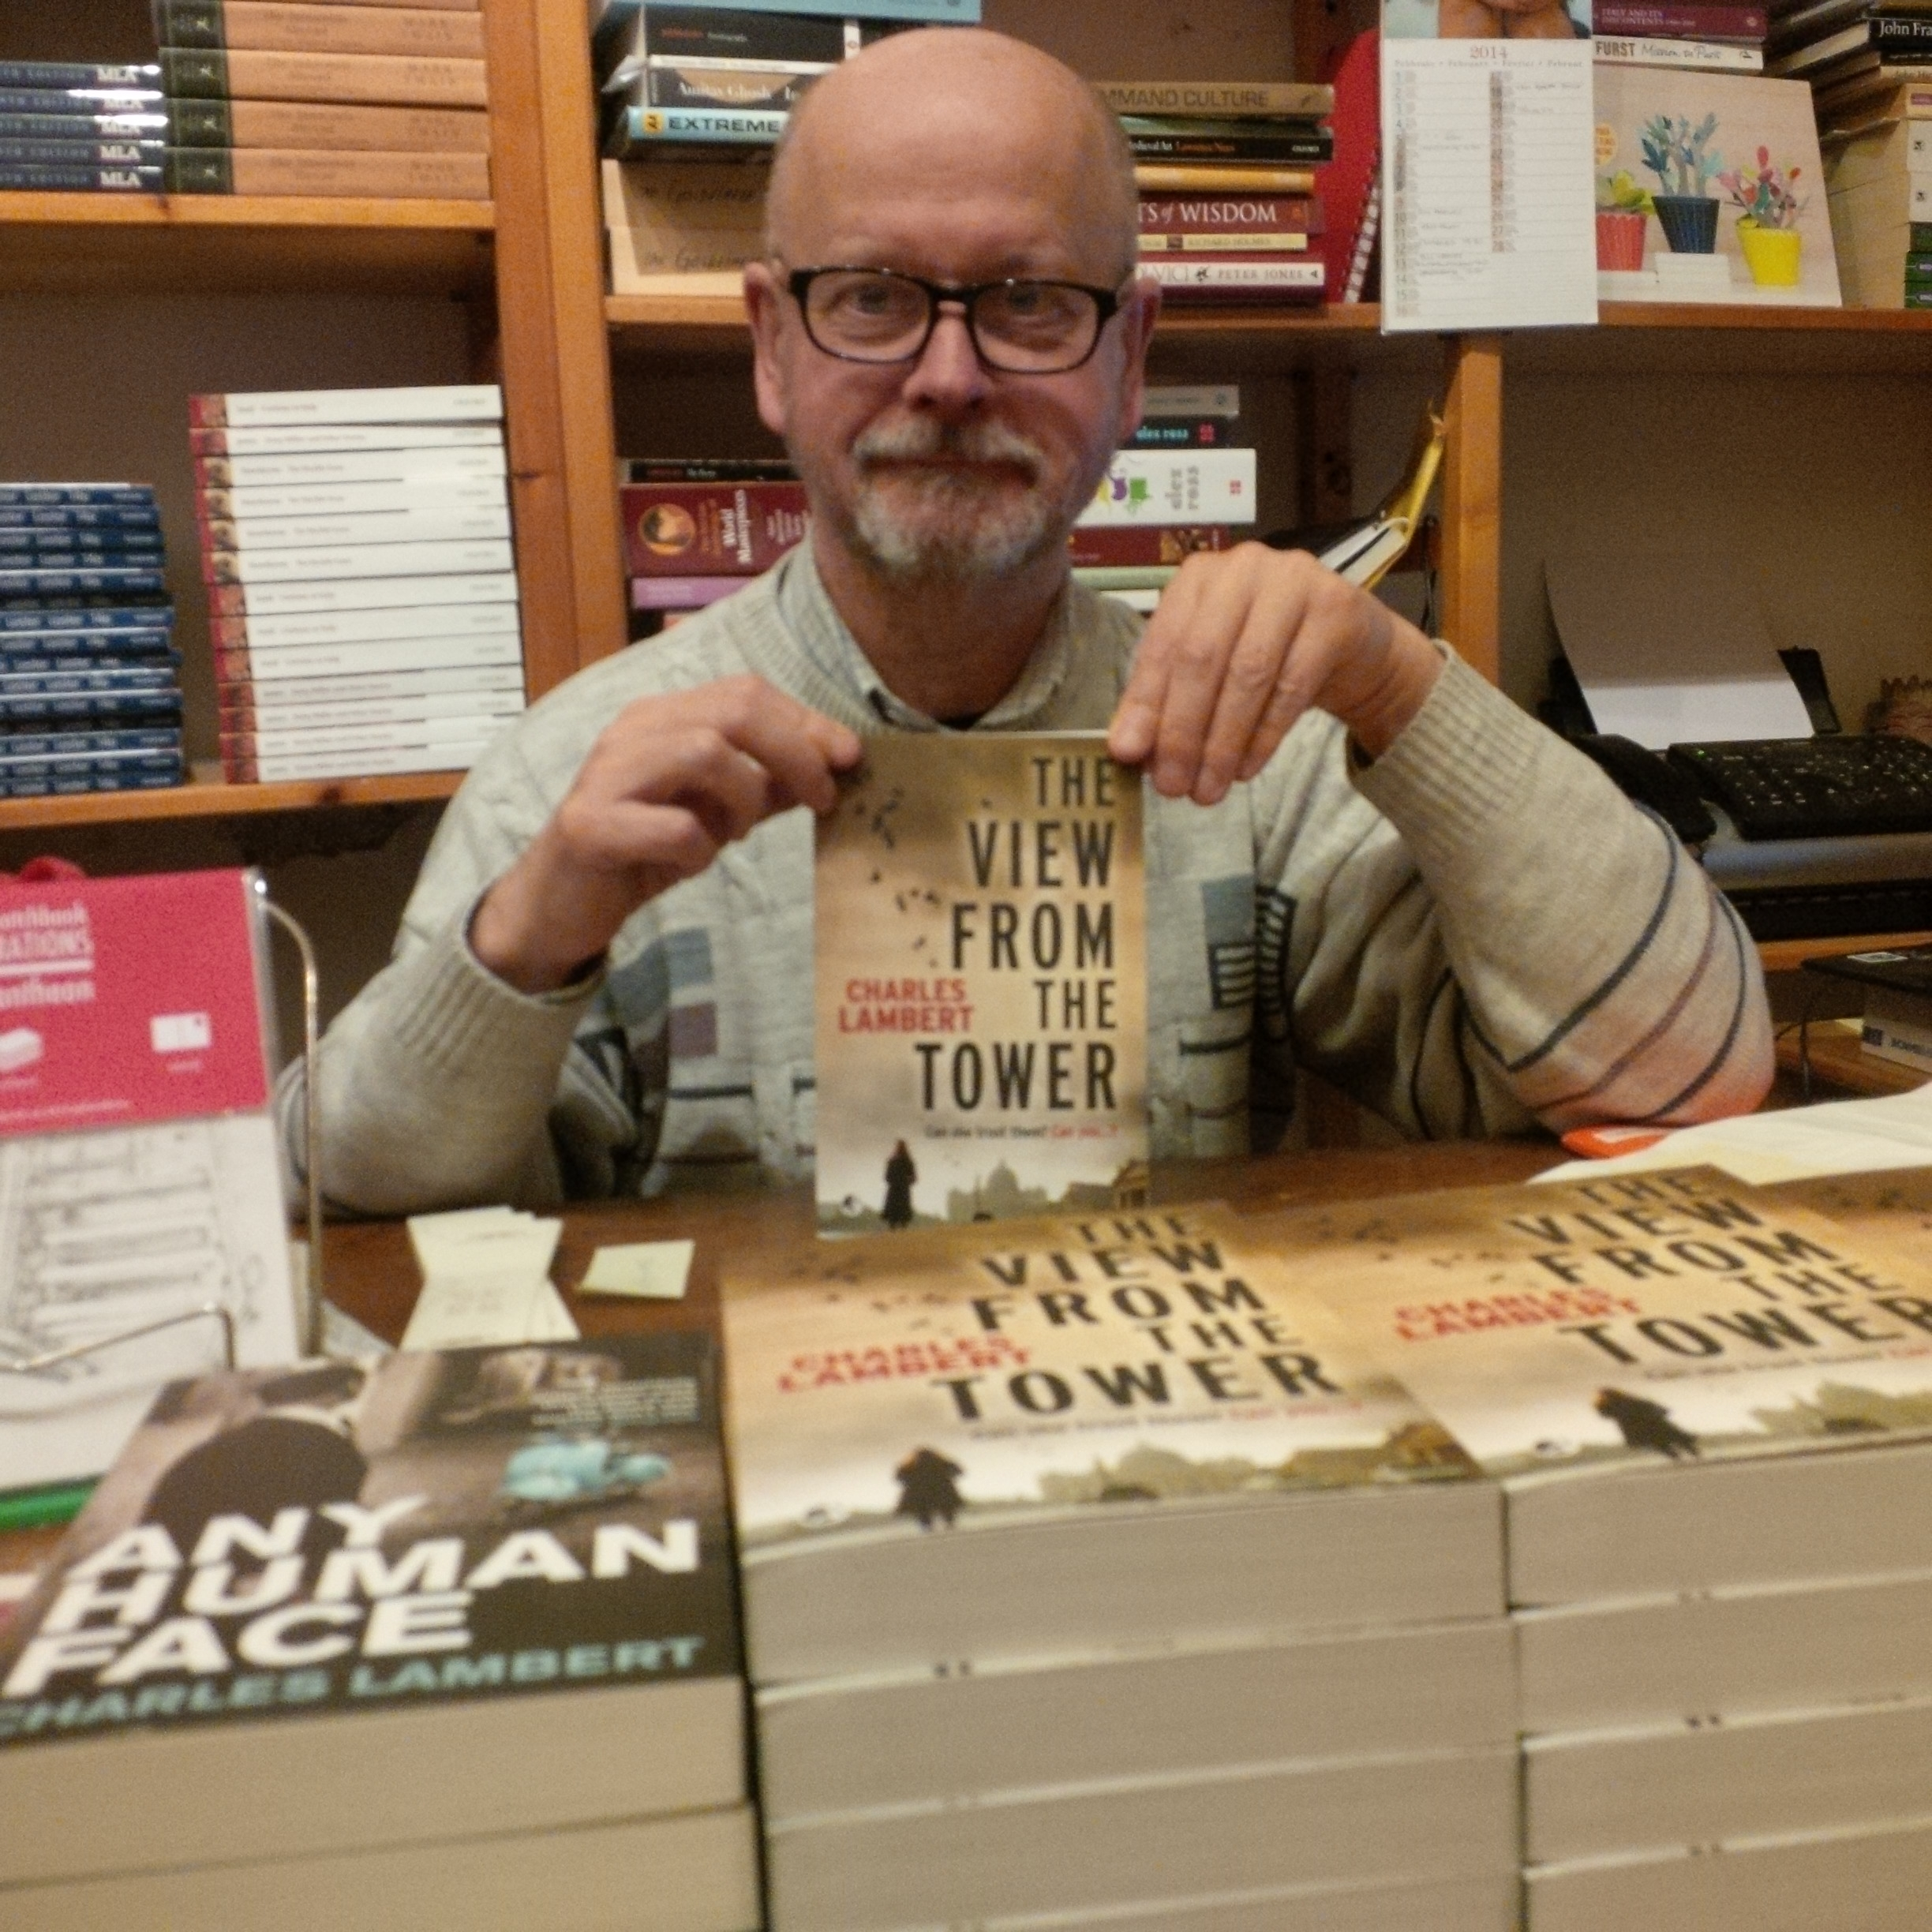 Dermot O'Connell (Almost Corner Bookshop) with copies of THE VIEW FROM THE TOWER by Charles Lambert.